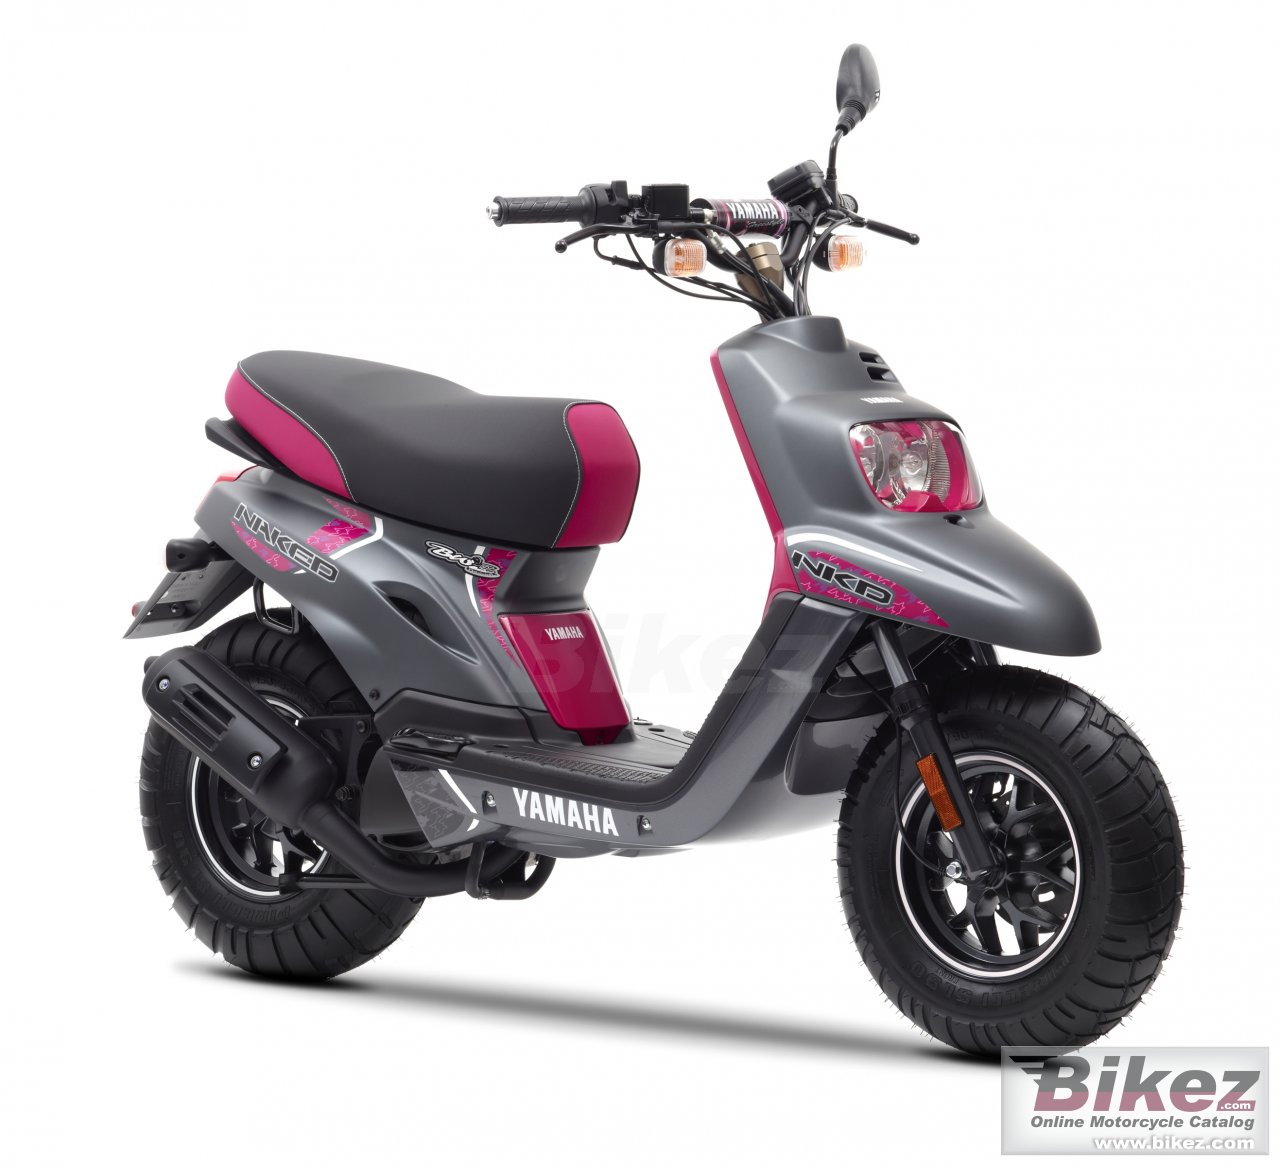 List of Synonyms and Antonyms of the Word: 2013 yamaha zuma 50